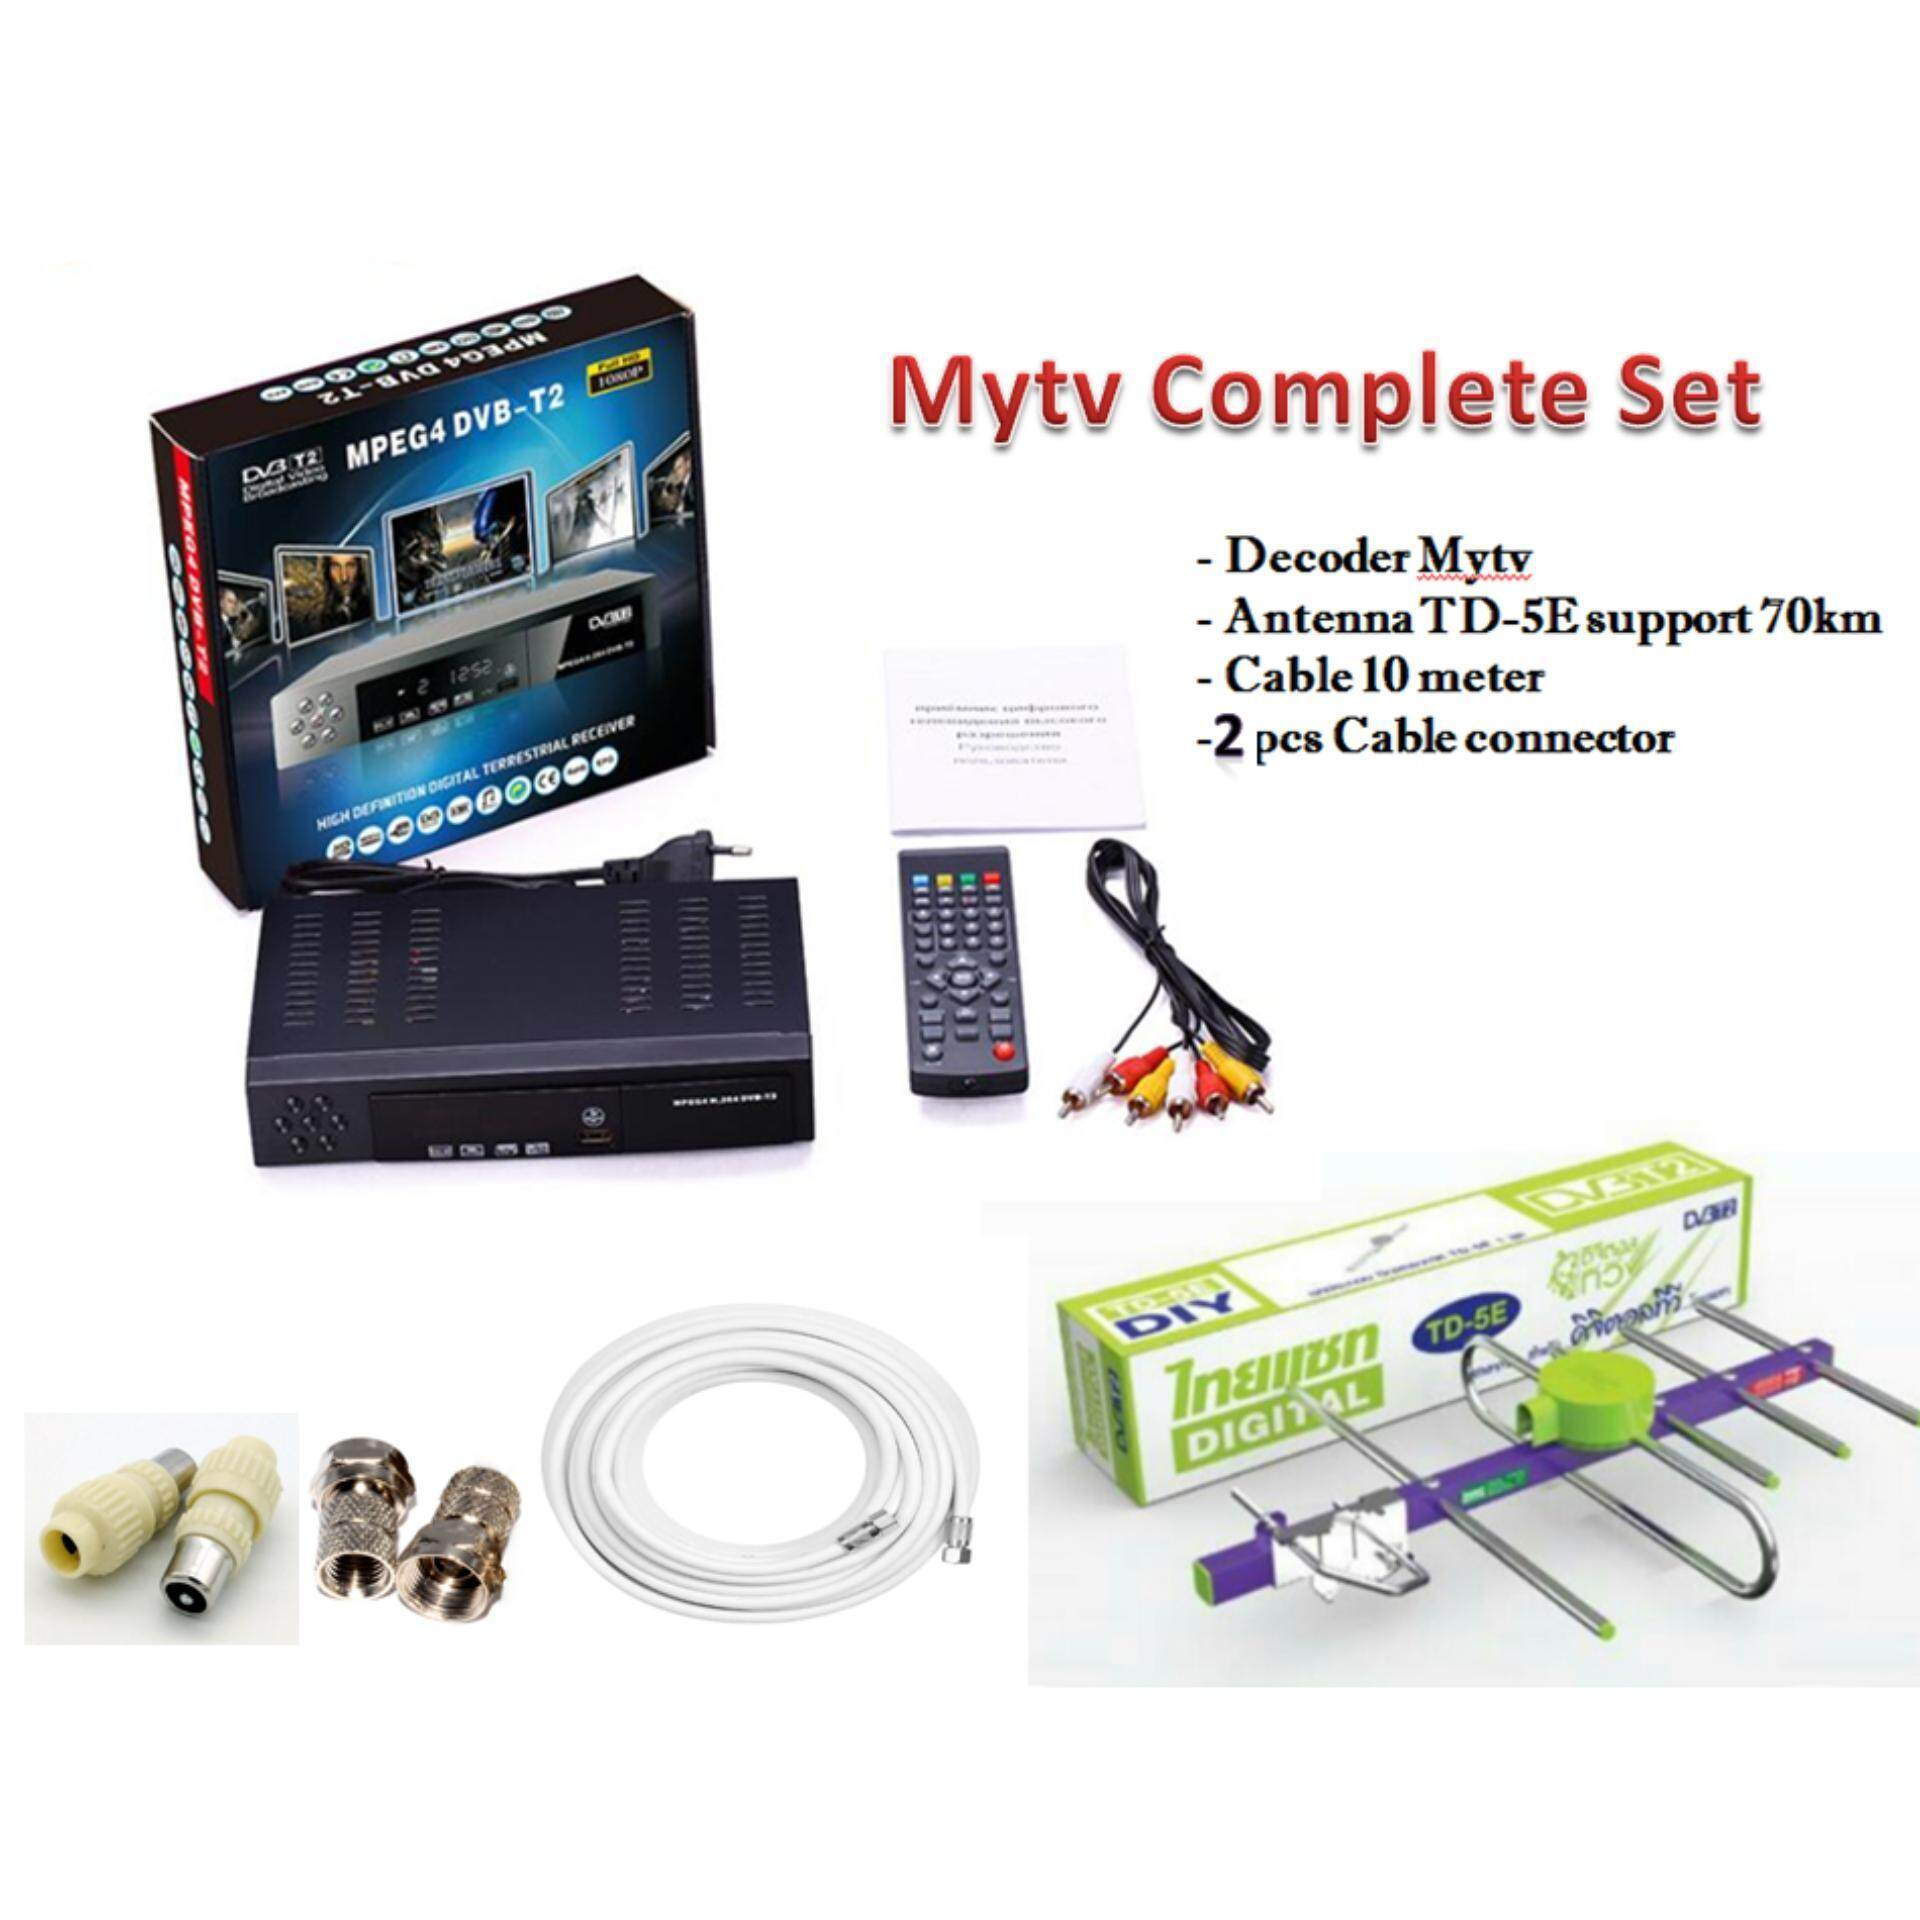 Mytv Full Complete Set ( Decoder + Antenna + Cable ) Malaysia